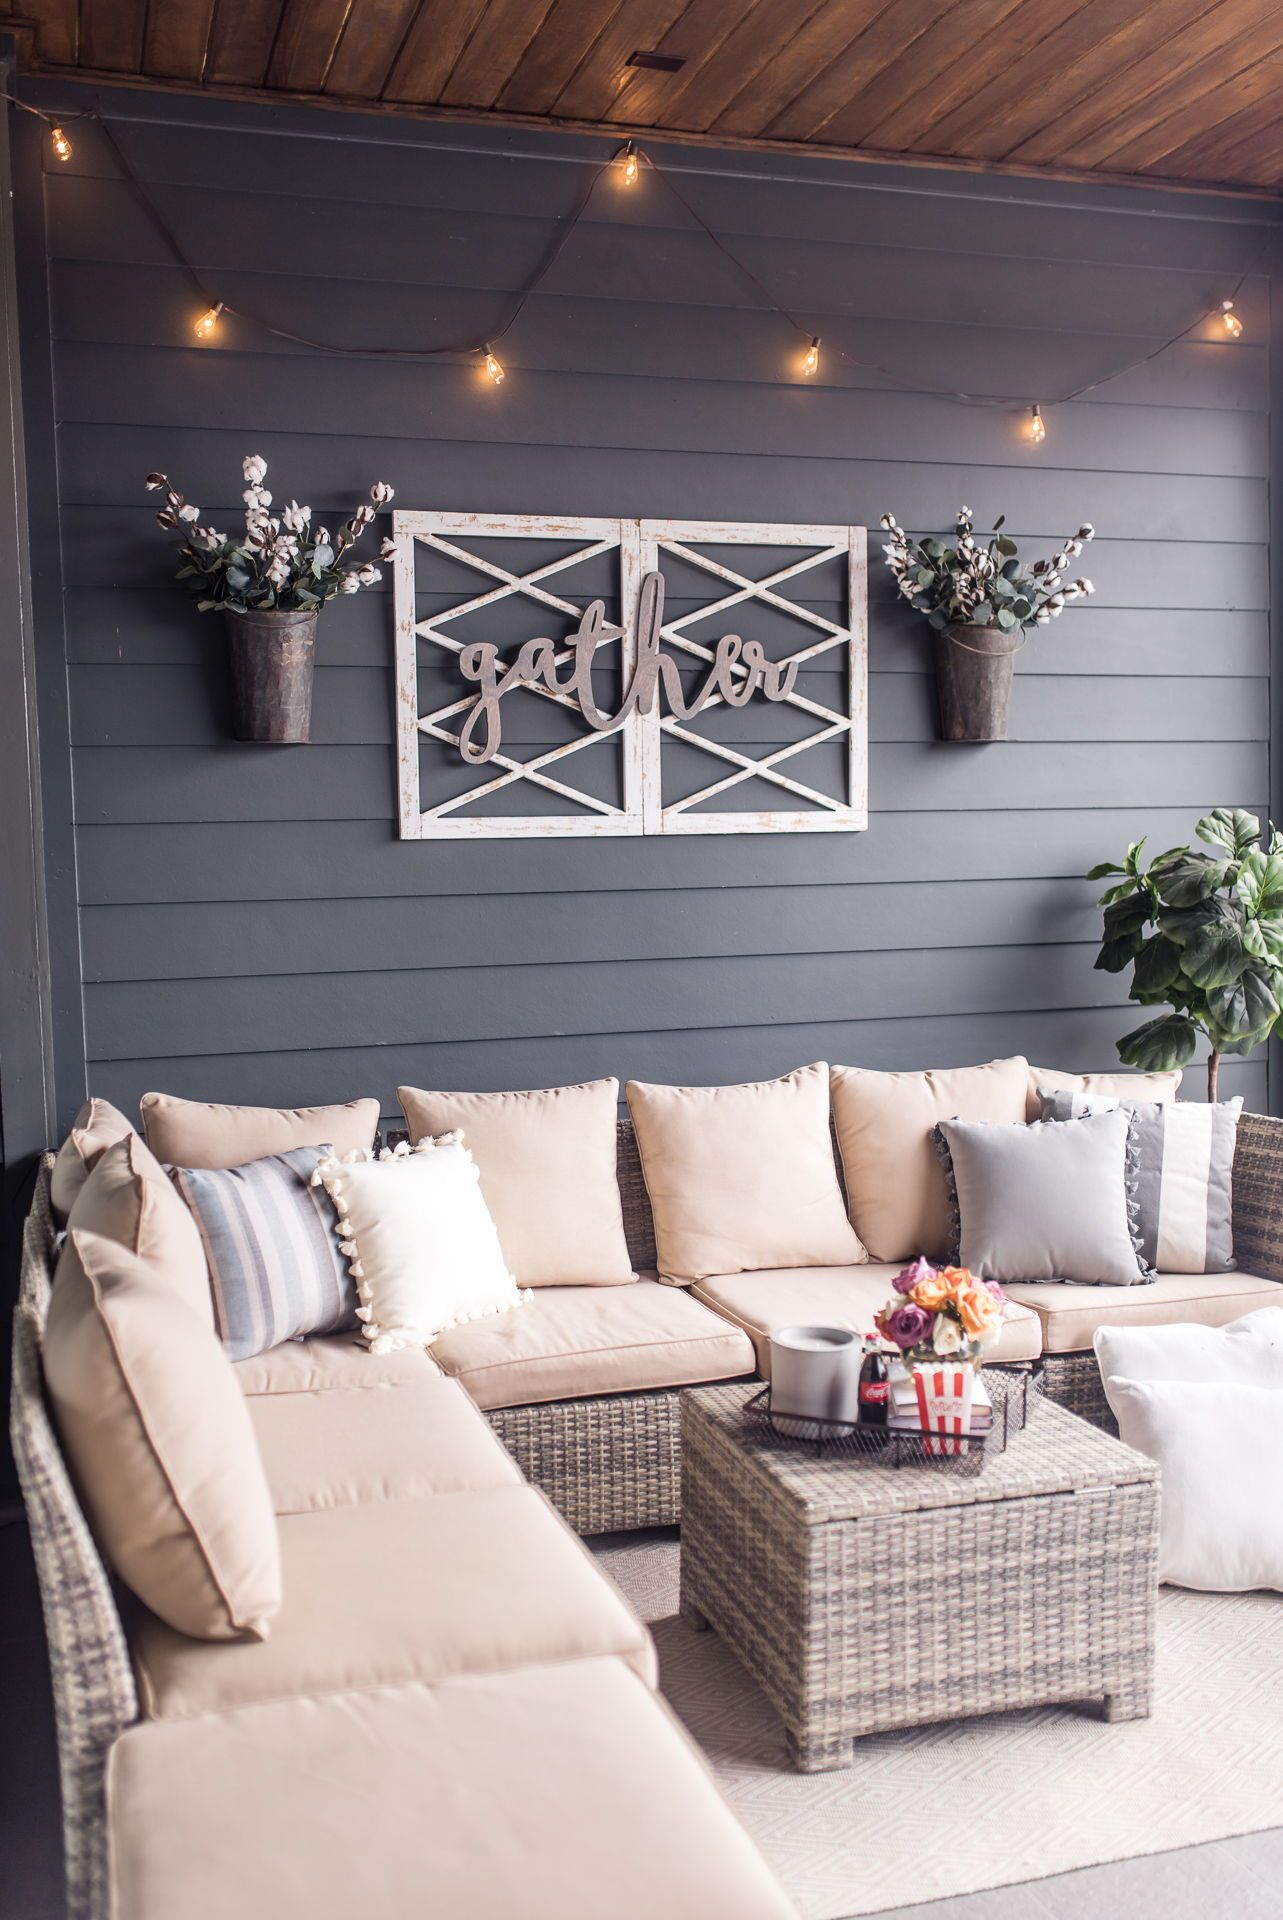 Outdoor terrace inspo as seen on the styled fox  houston fashion blog also diy movie night plus bloggers home decor trends rh pinterest